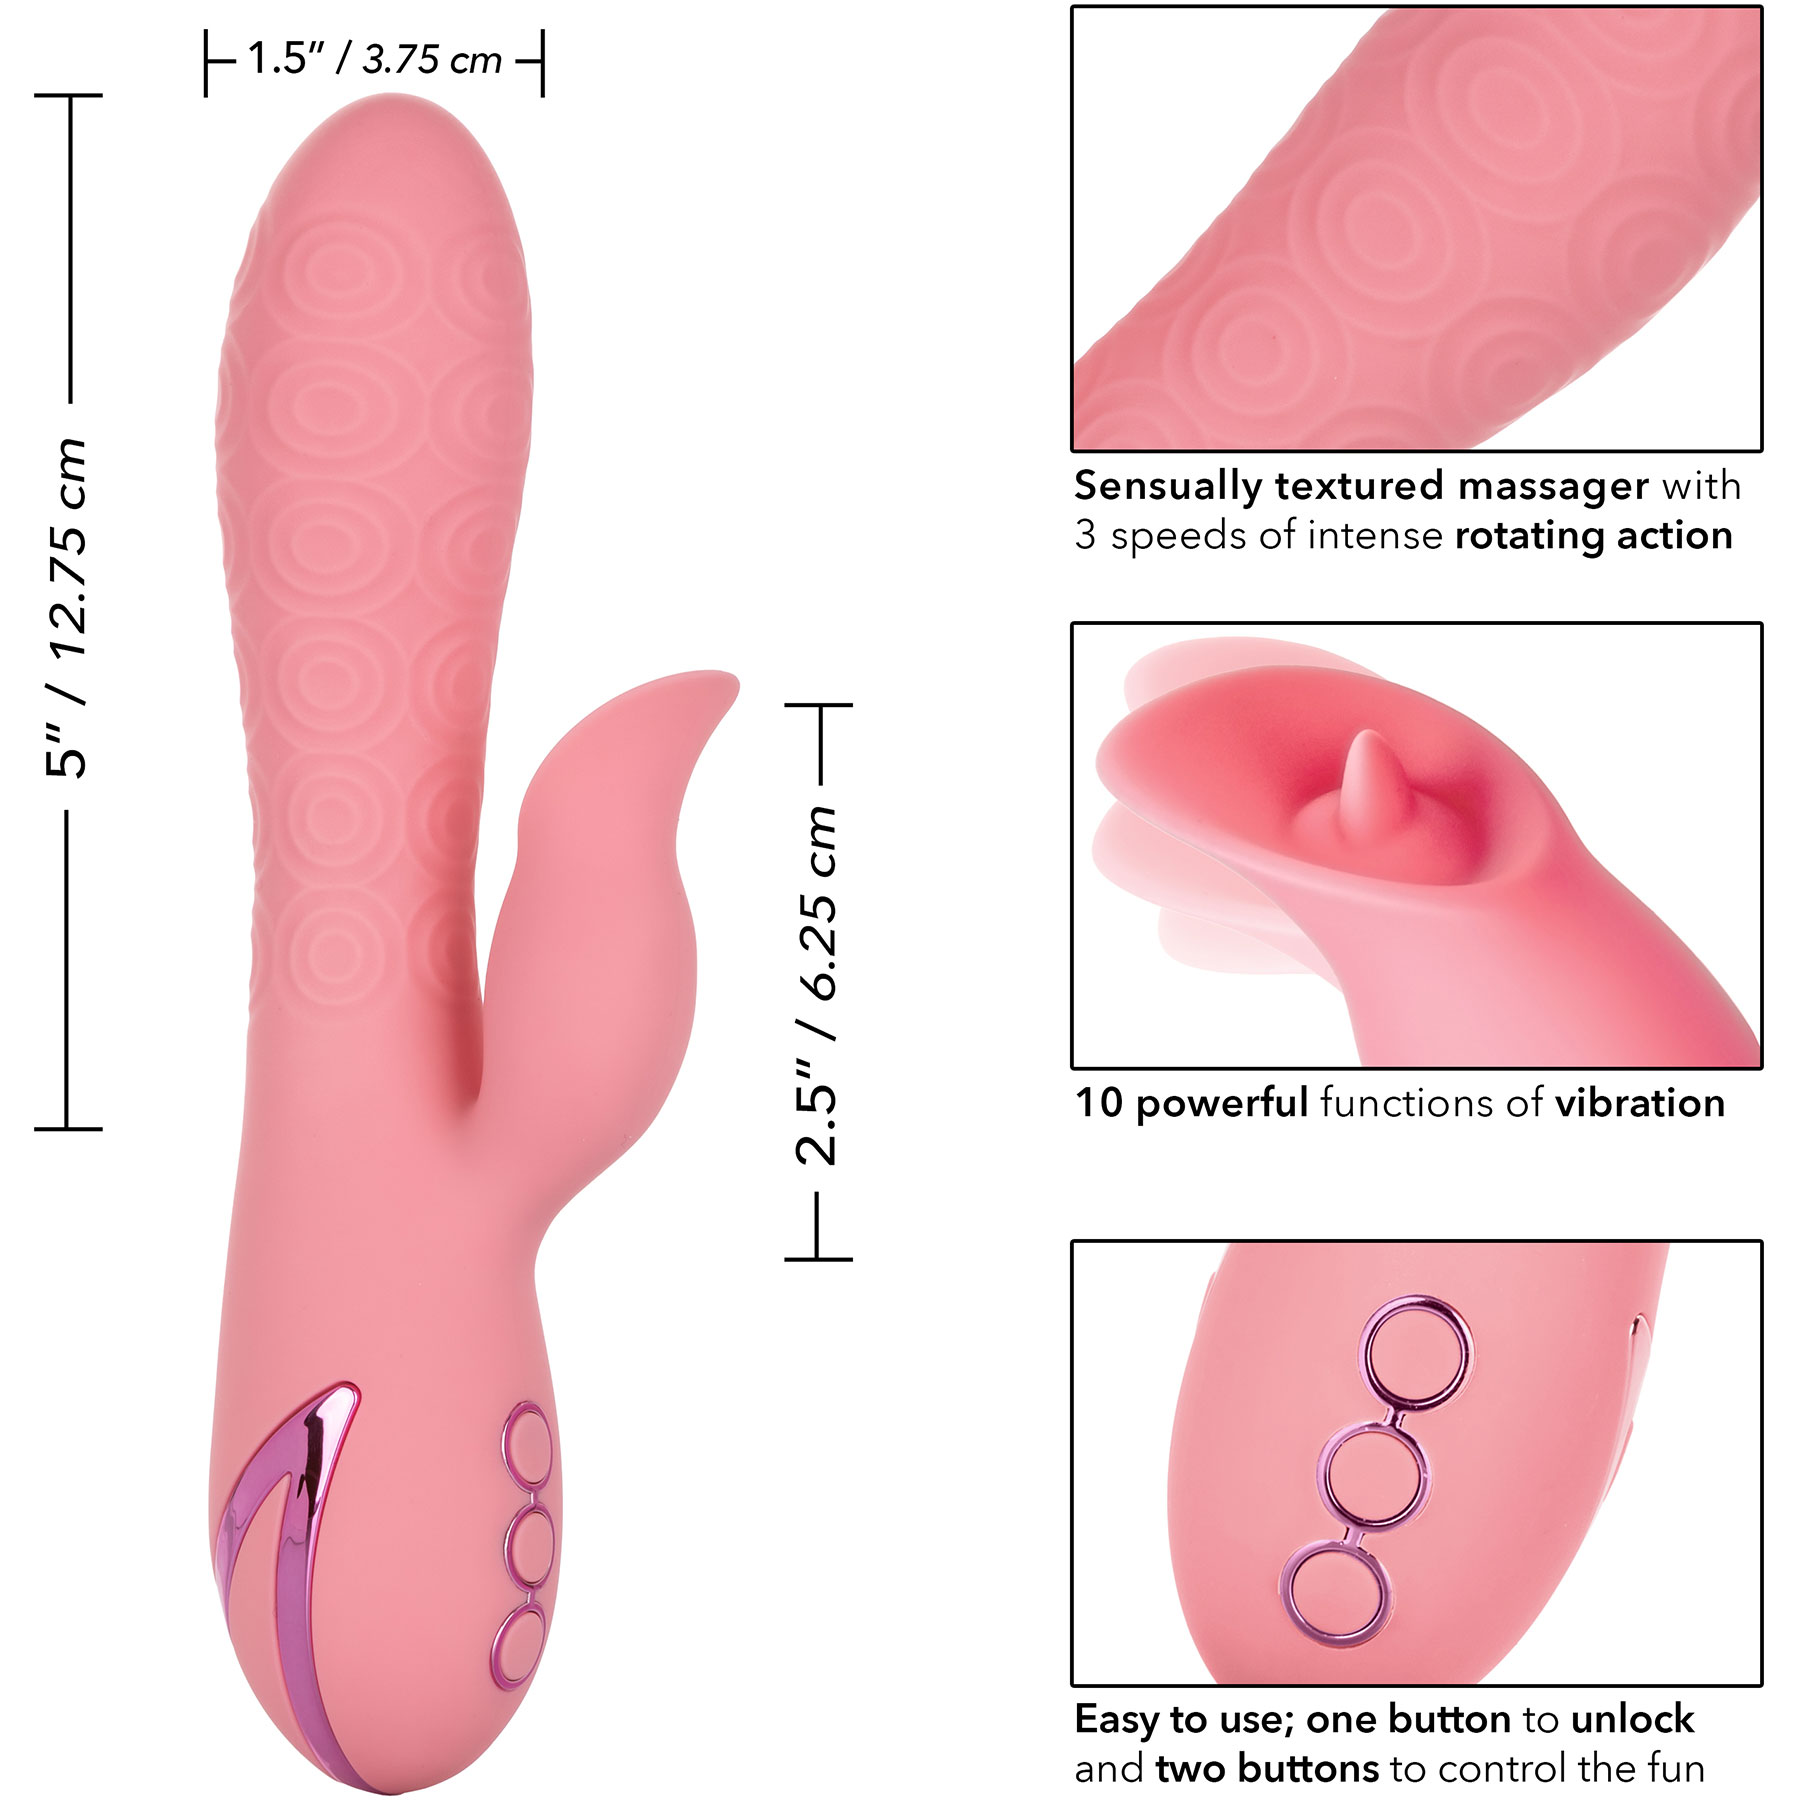 California Dreaming Pasadena Player Rabbit Style Silicone Vibrator - Measurements